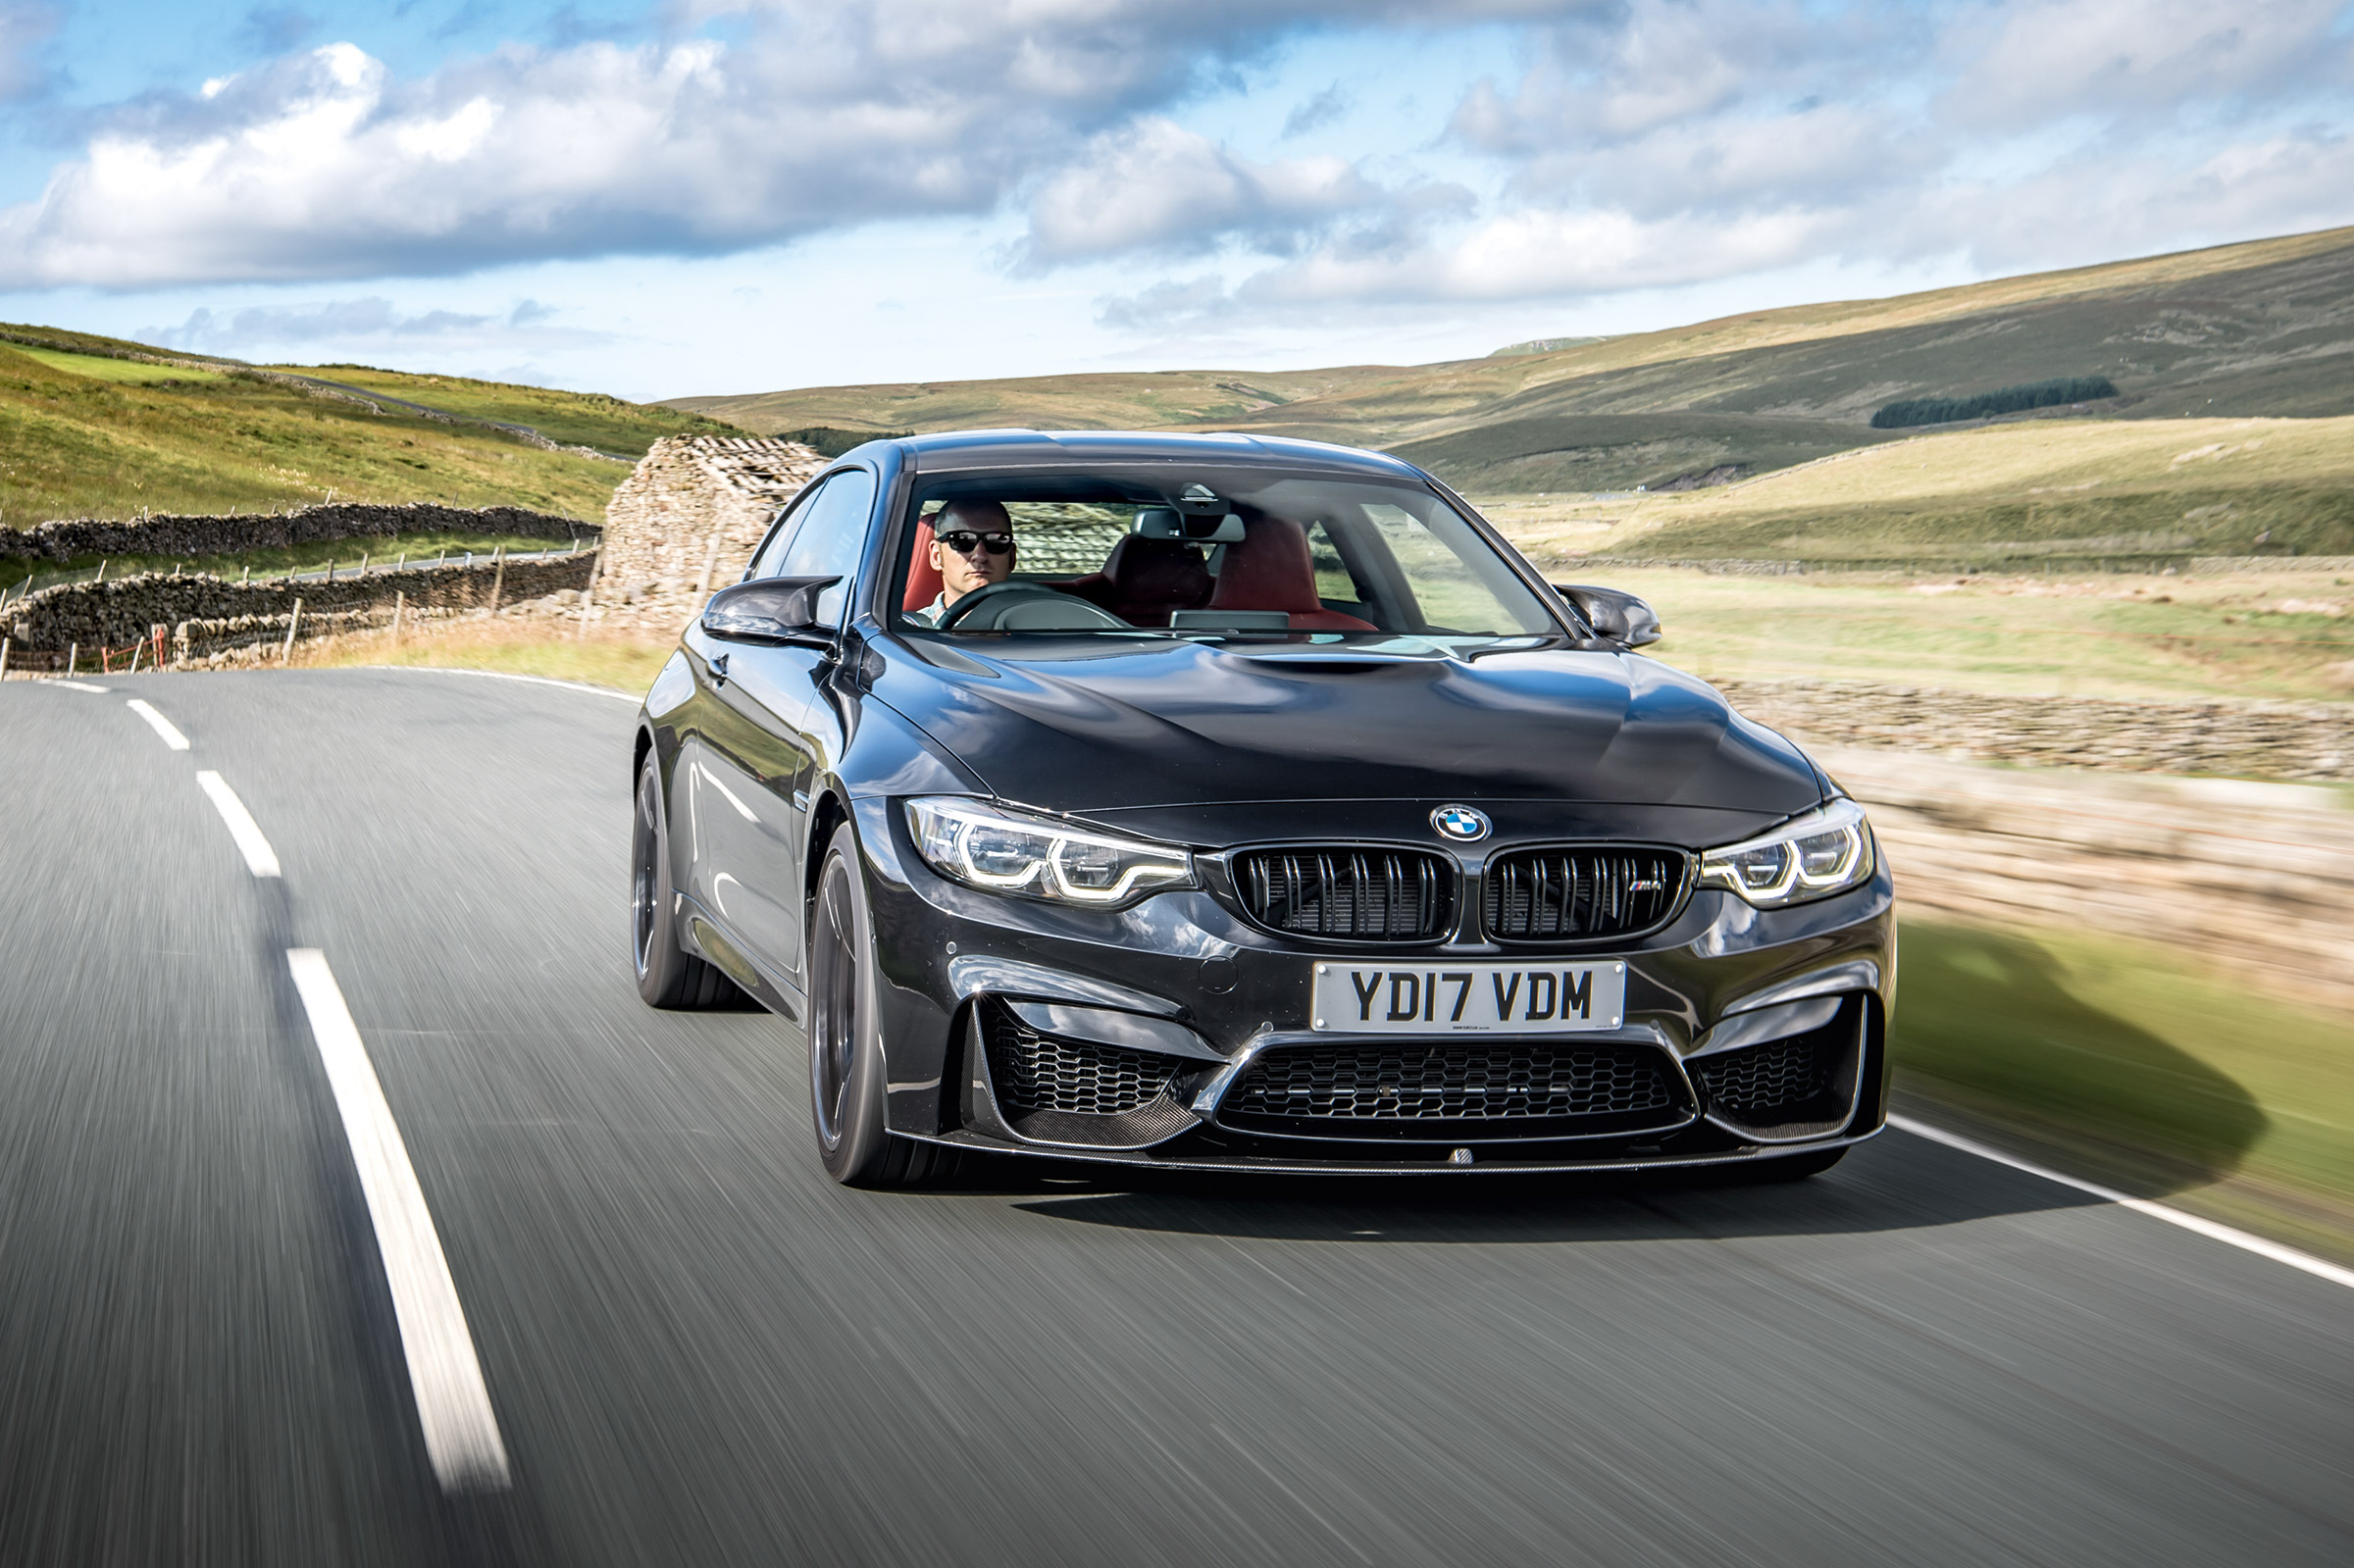 Bmw M4 Review Specifications Price And 0 60 Time Evo